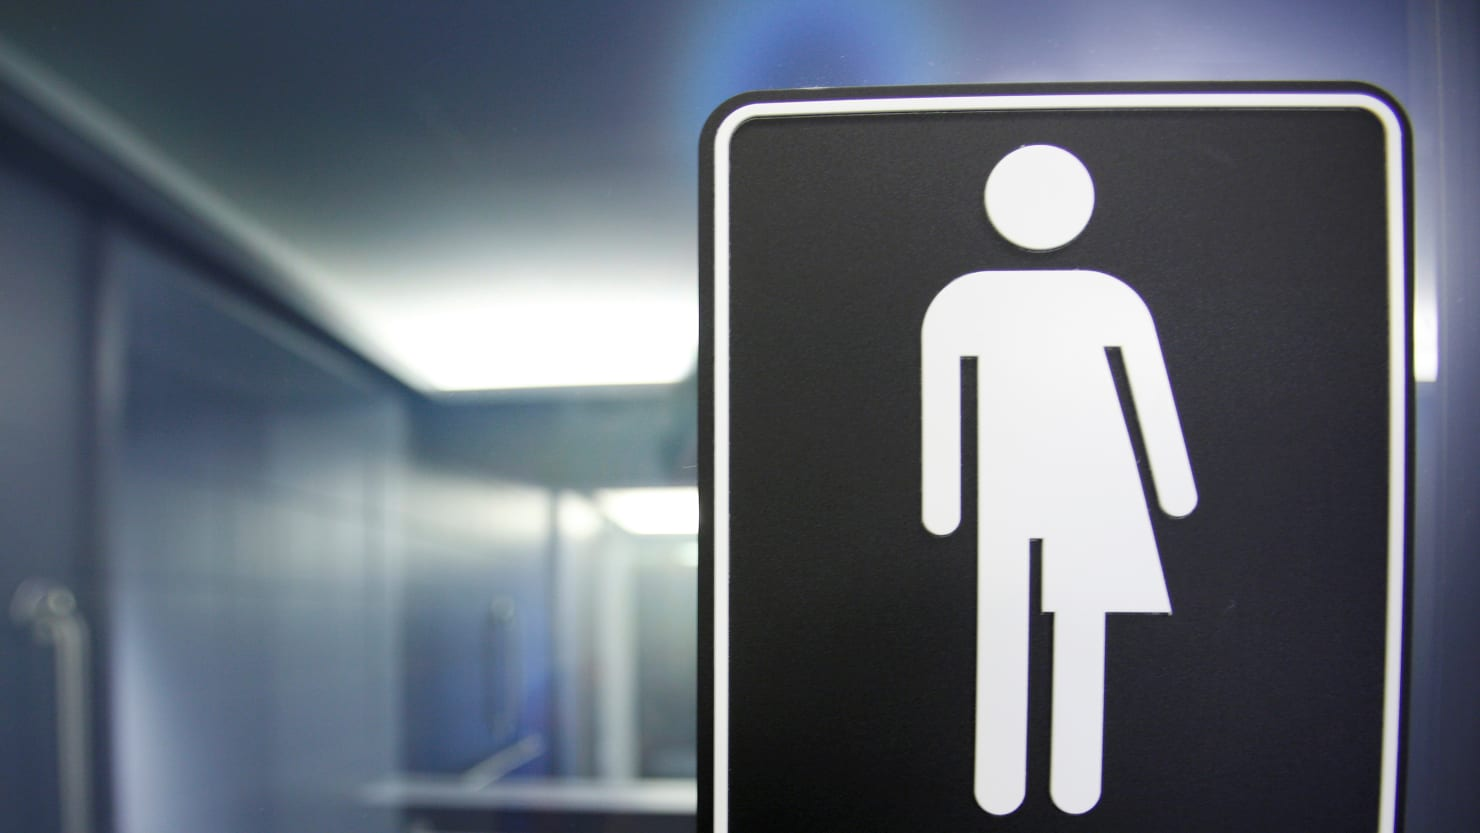 New Zealand Diplomat Found Guilty of Planting Camera in Unisex U.S. Embassy Toilet